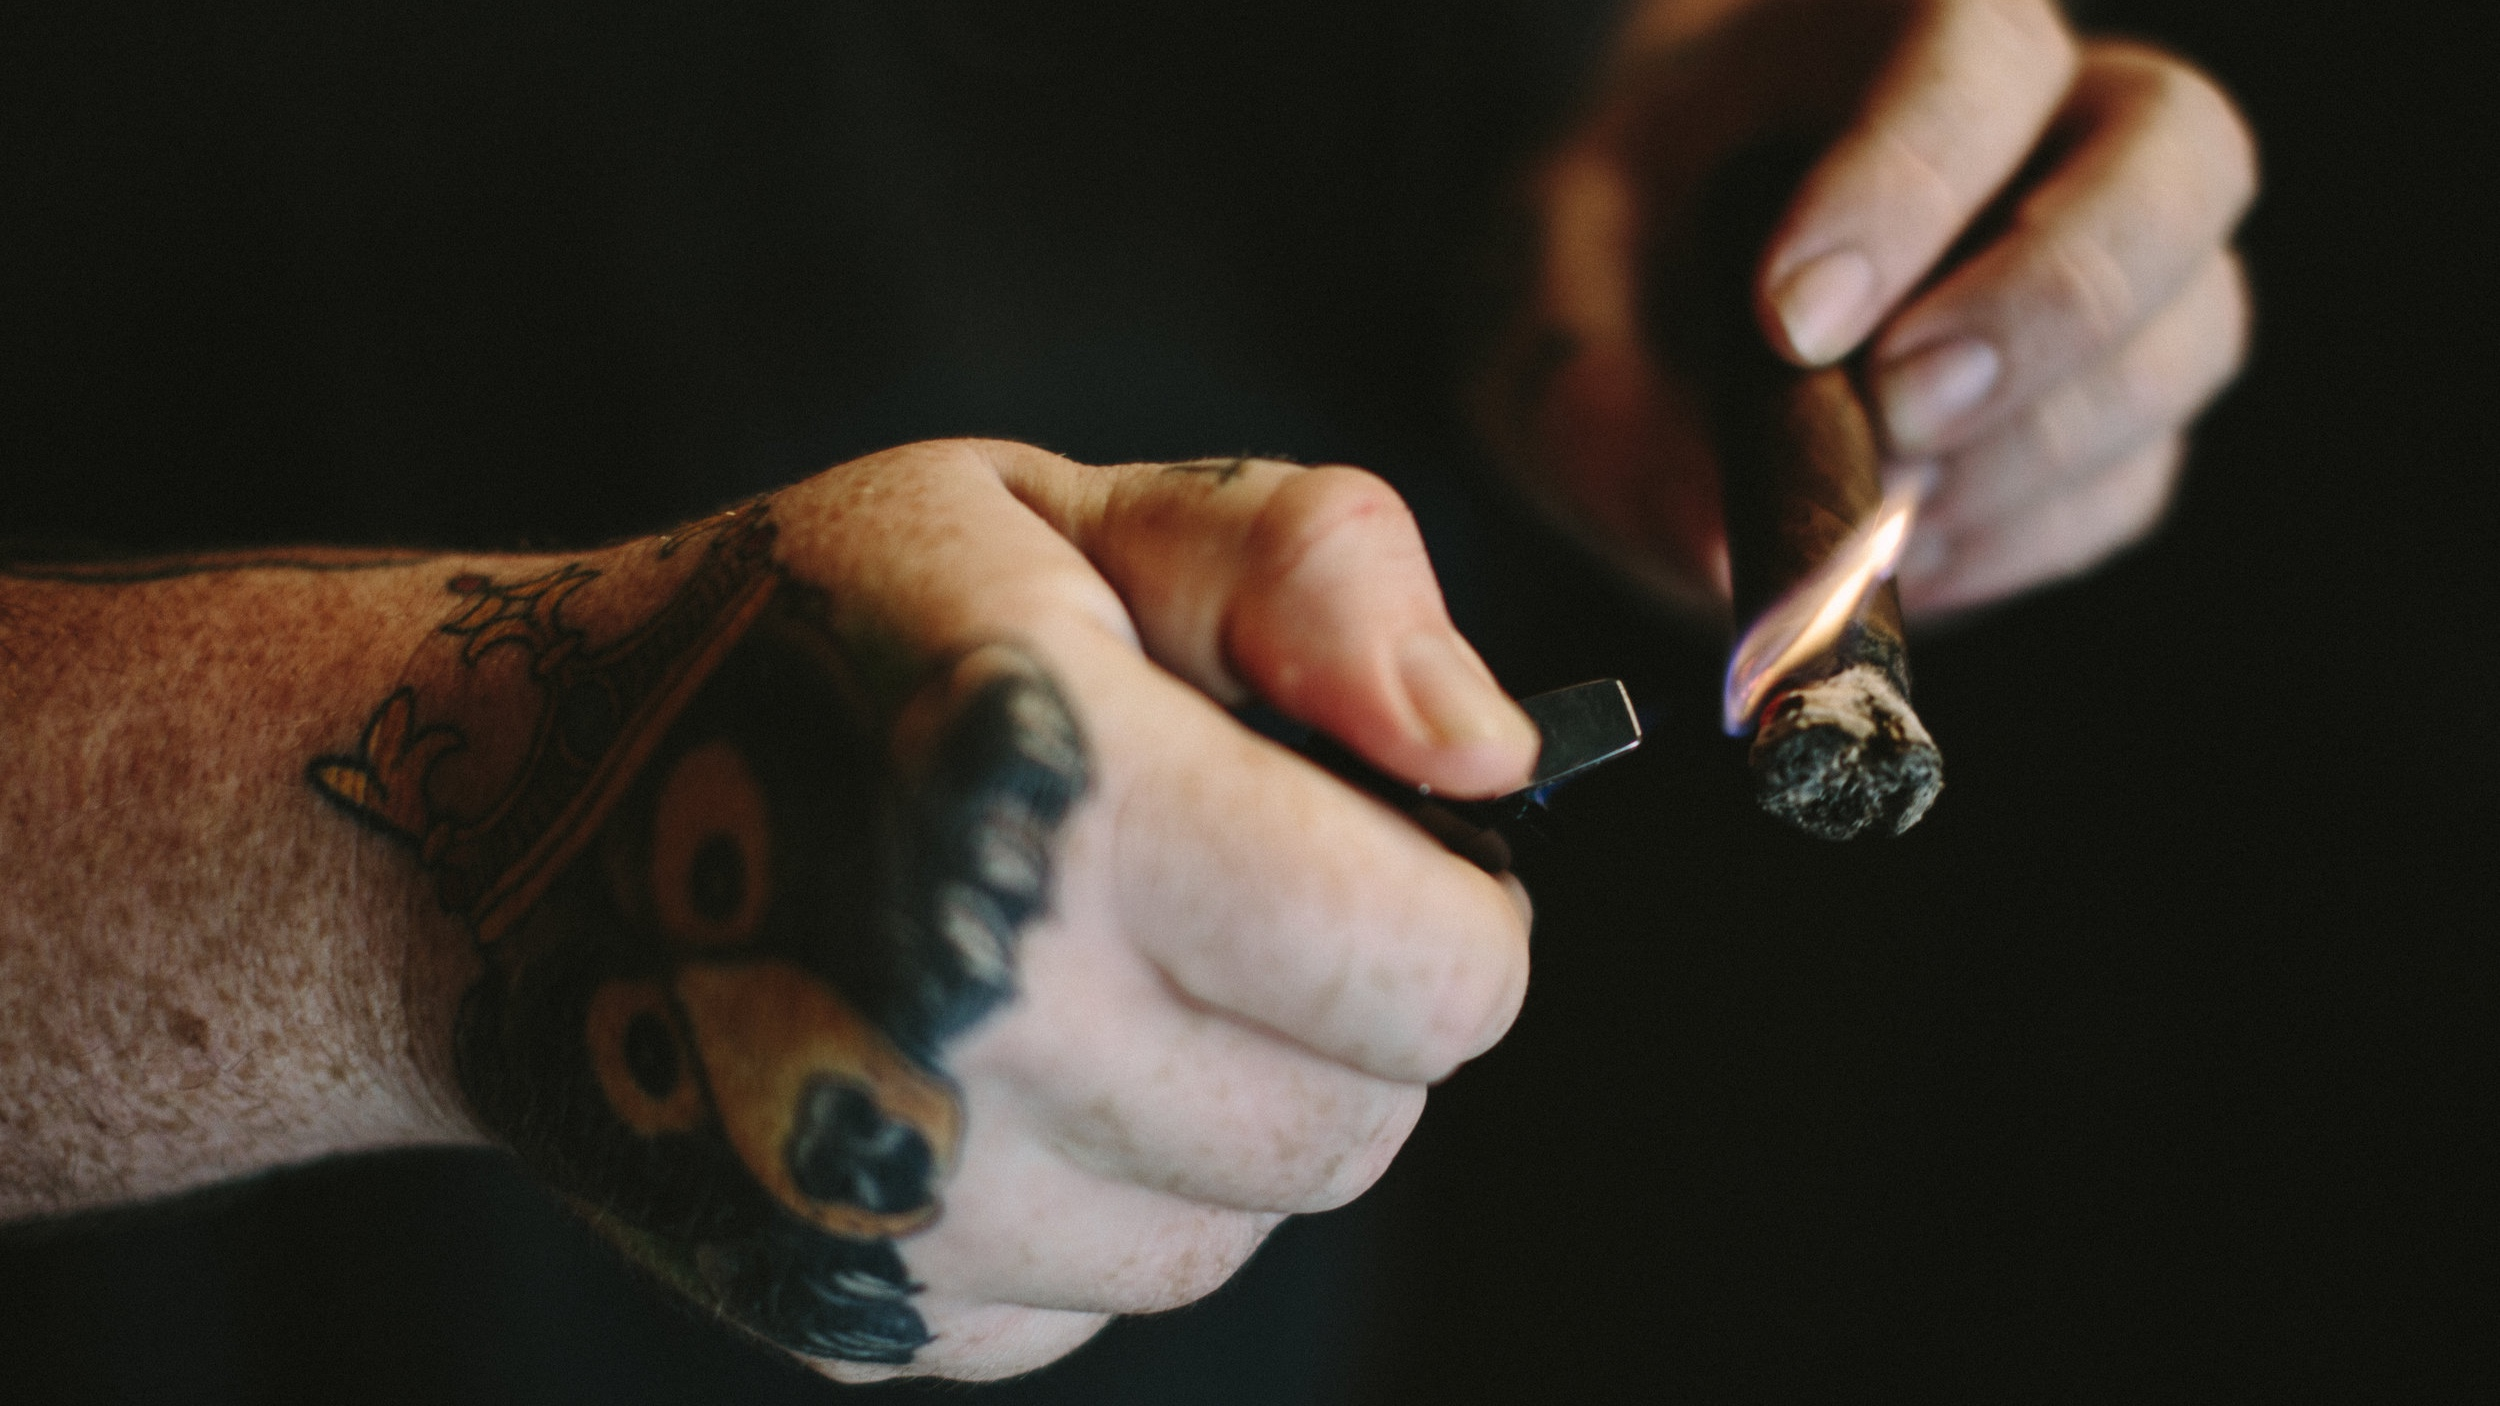 - We believe cigars can lead to great relationships and good conversations. So, we carefully curate our humidor with the best small batch, small company cigars the industry has to offer.